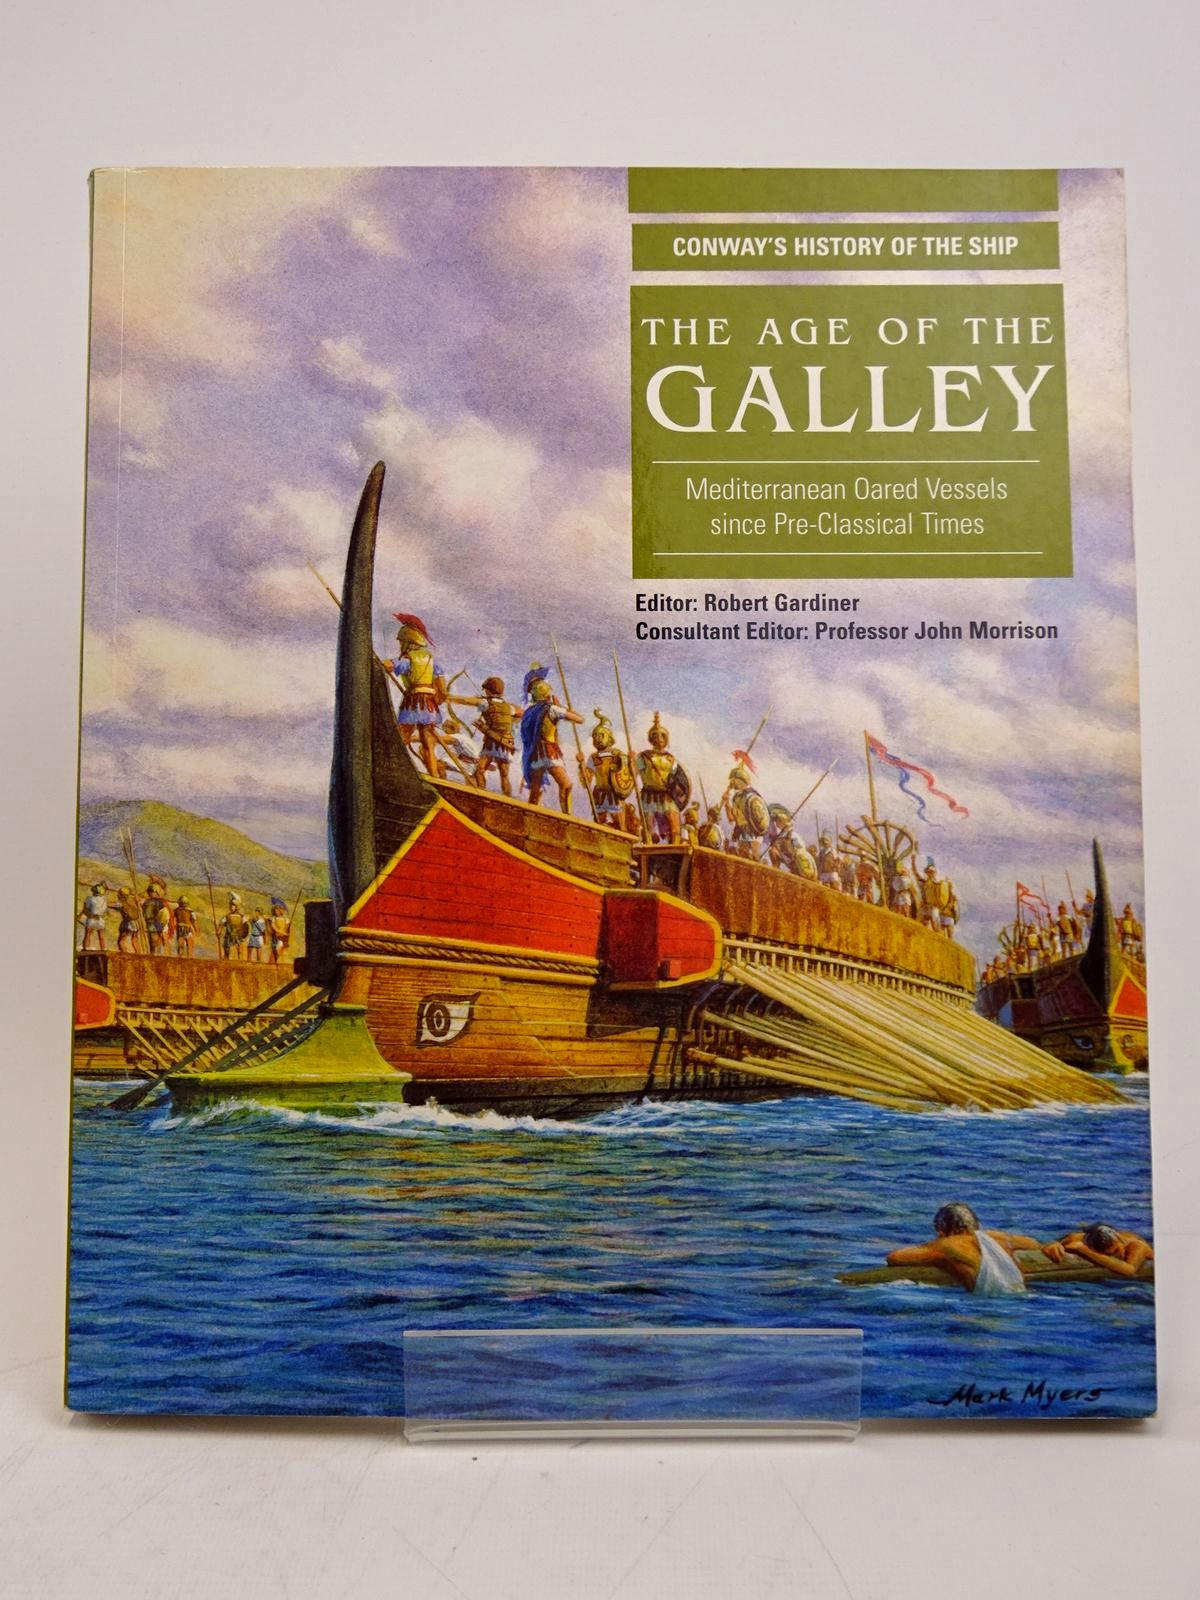 Photo of THE AGE OF THE GALLEY written by Gardiner, Robert Morrison, John published by Conway Maritime Press (STOCK CODE: 1817912)  for sale by Stella & Rose's Books